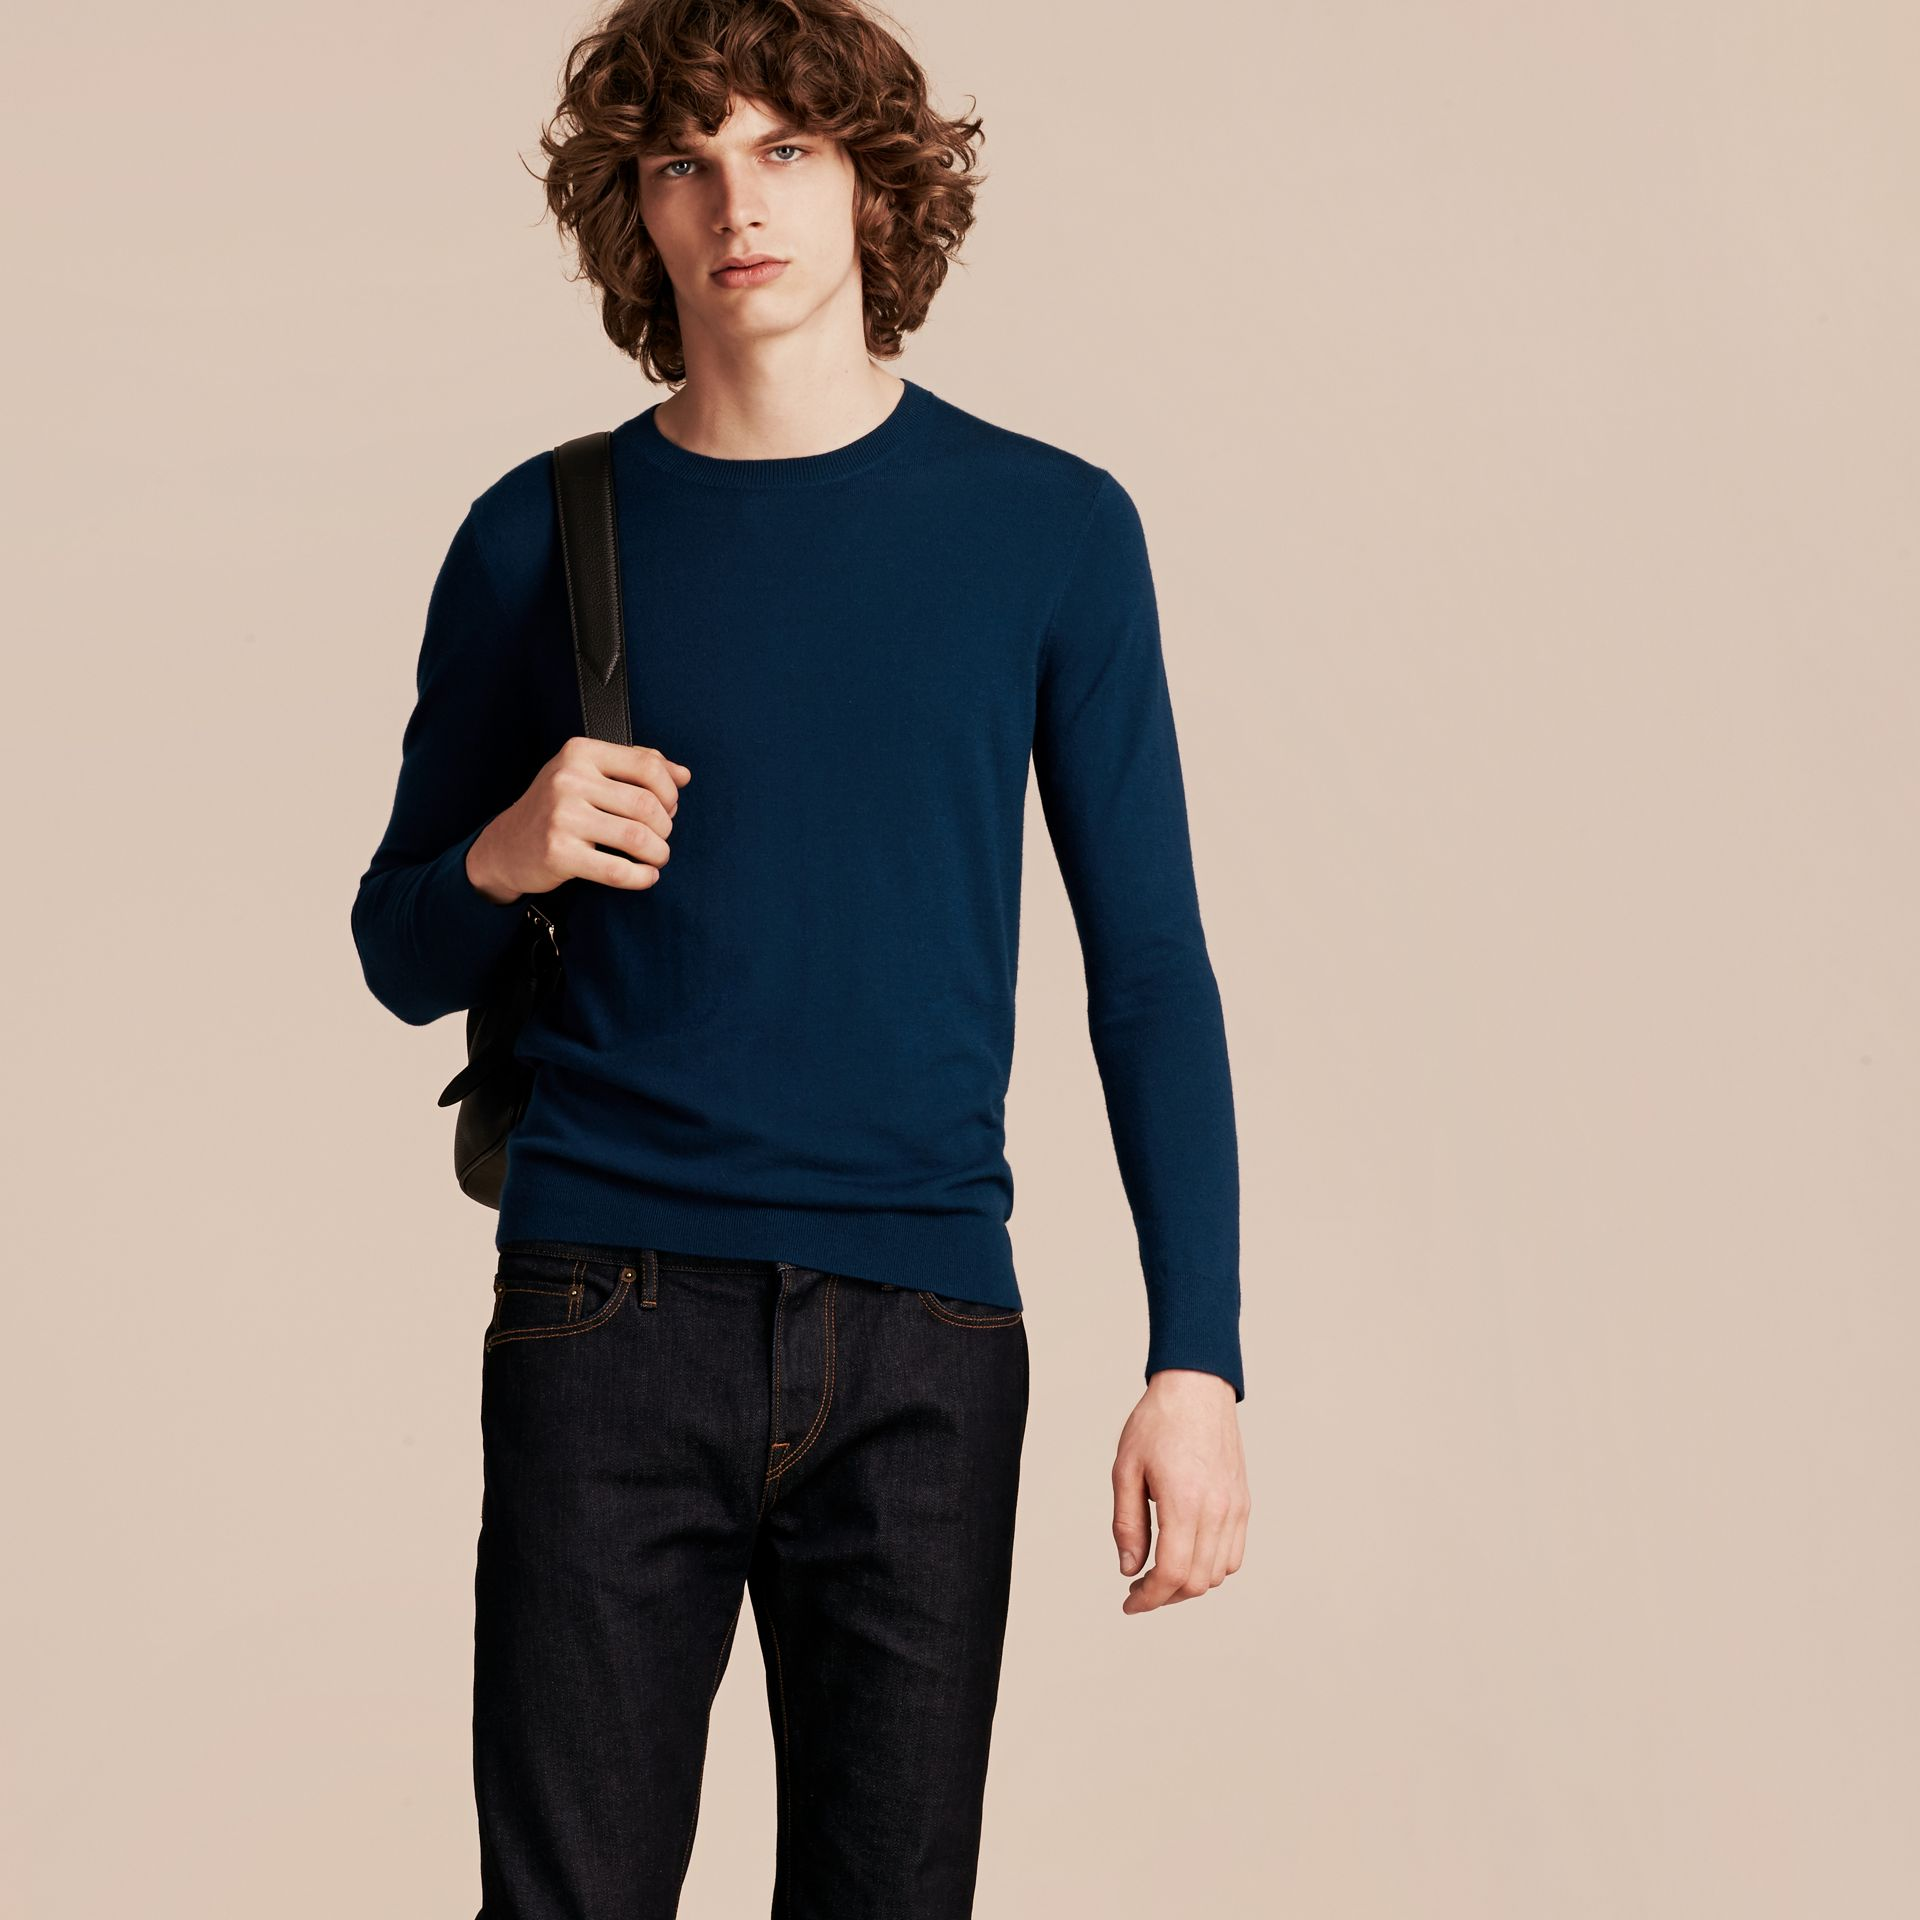 Check Jacquard Detail Cashmere Sweater in Dark Teal - Men | Burberry - gallery image 6